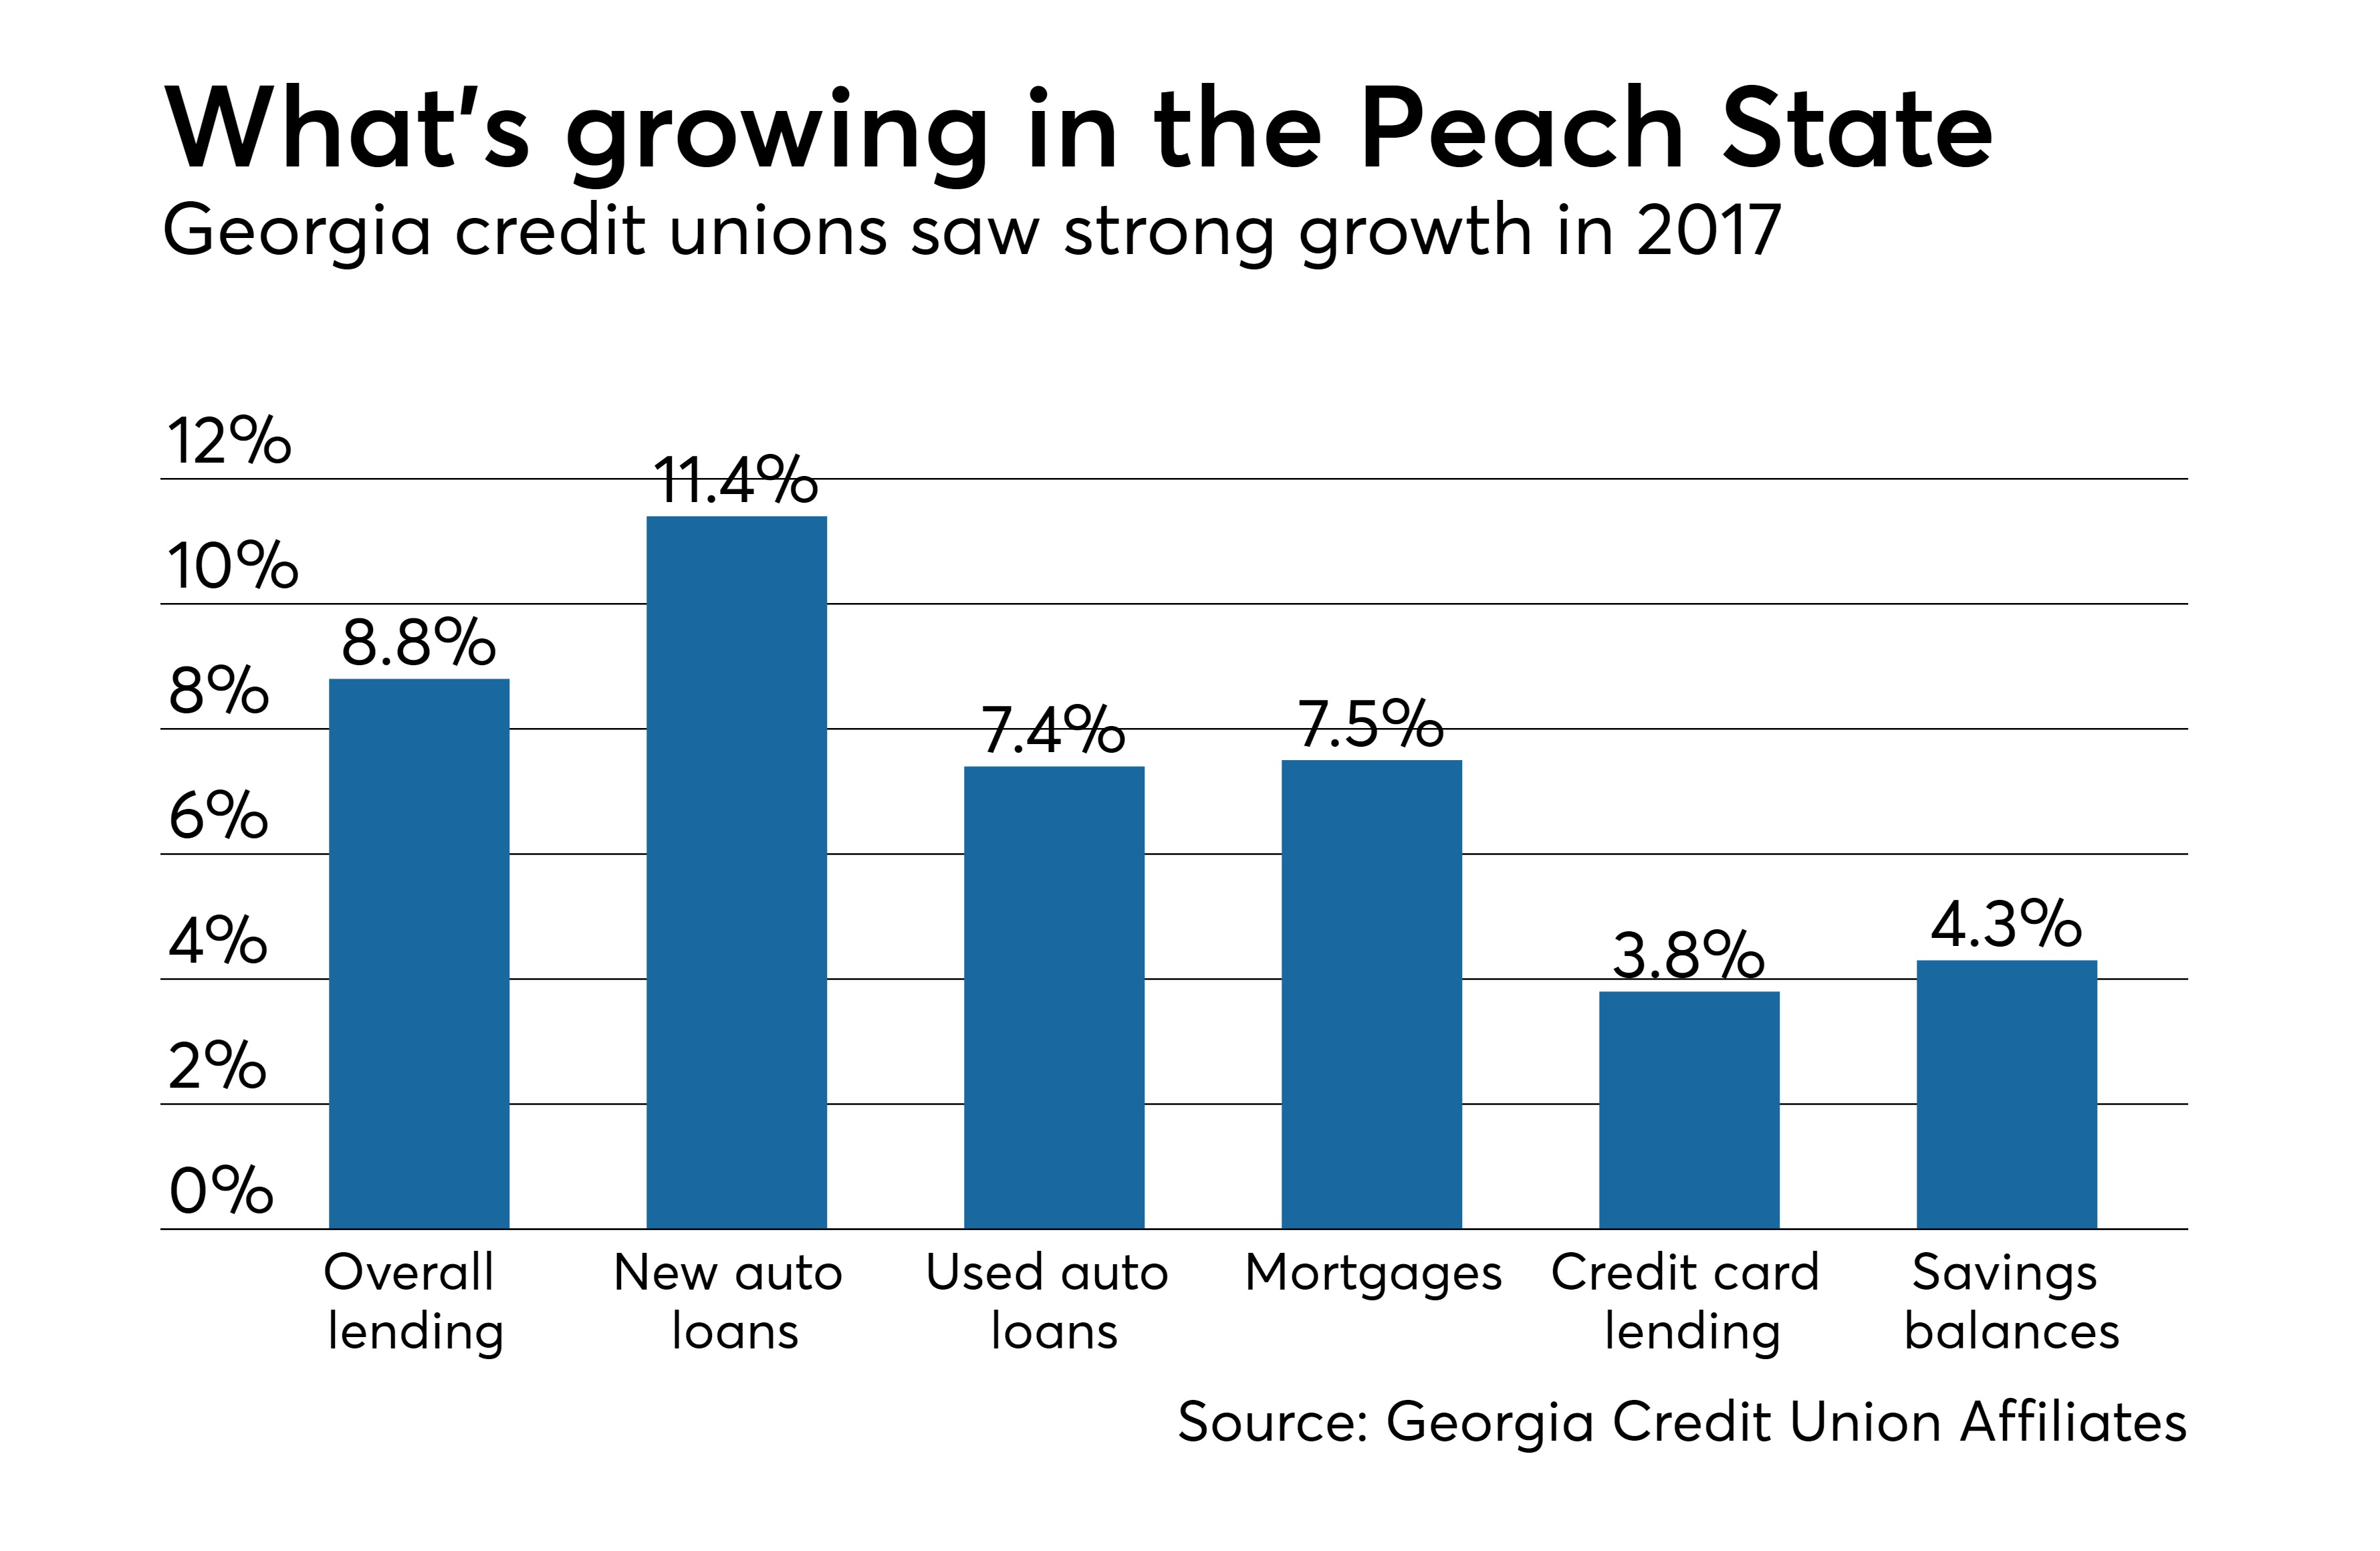 https://assets.sourcemedia.com/42/51/003096224ae29e8353609ec00a8a/georgia-credit-union-2017-growth-stats-cuj-042718.jpeg